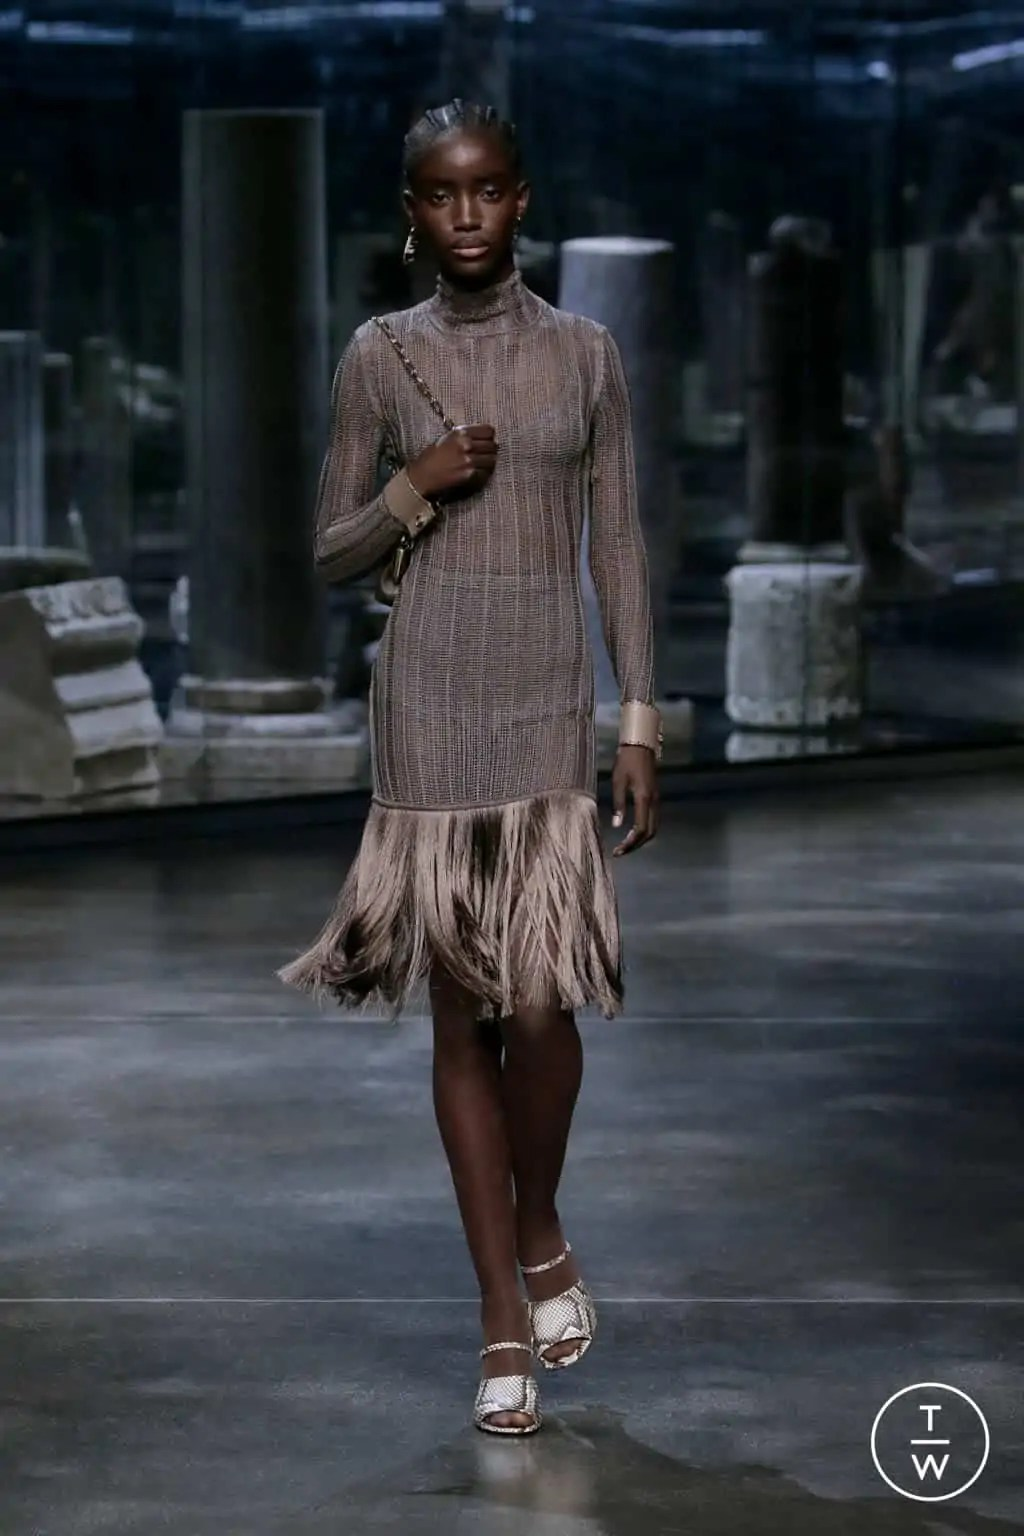 FENDI FALL/WINTER 2021 — Look 29